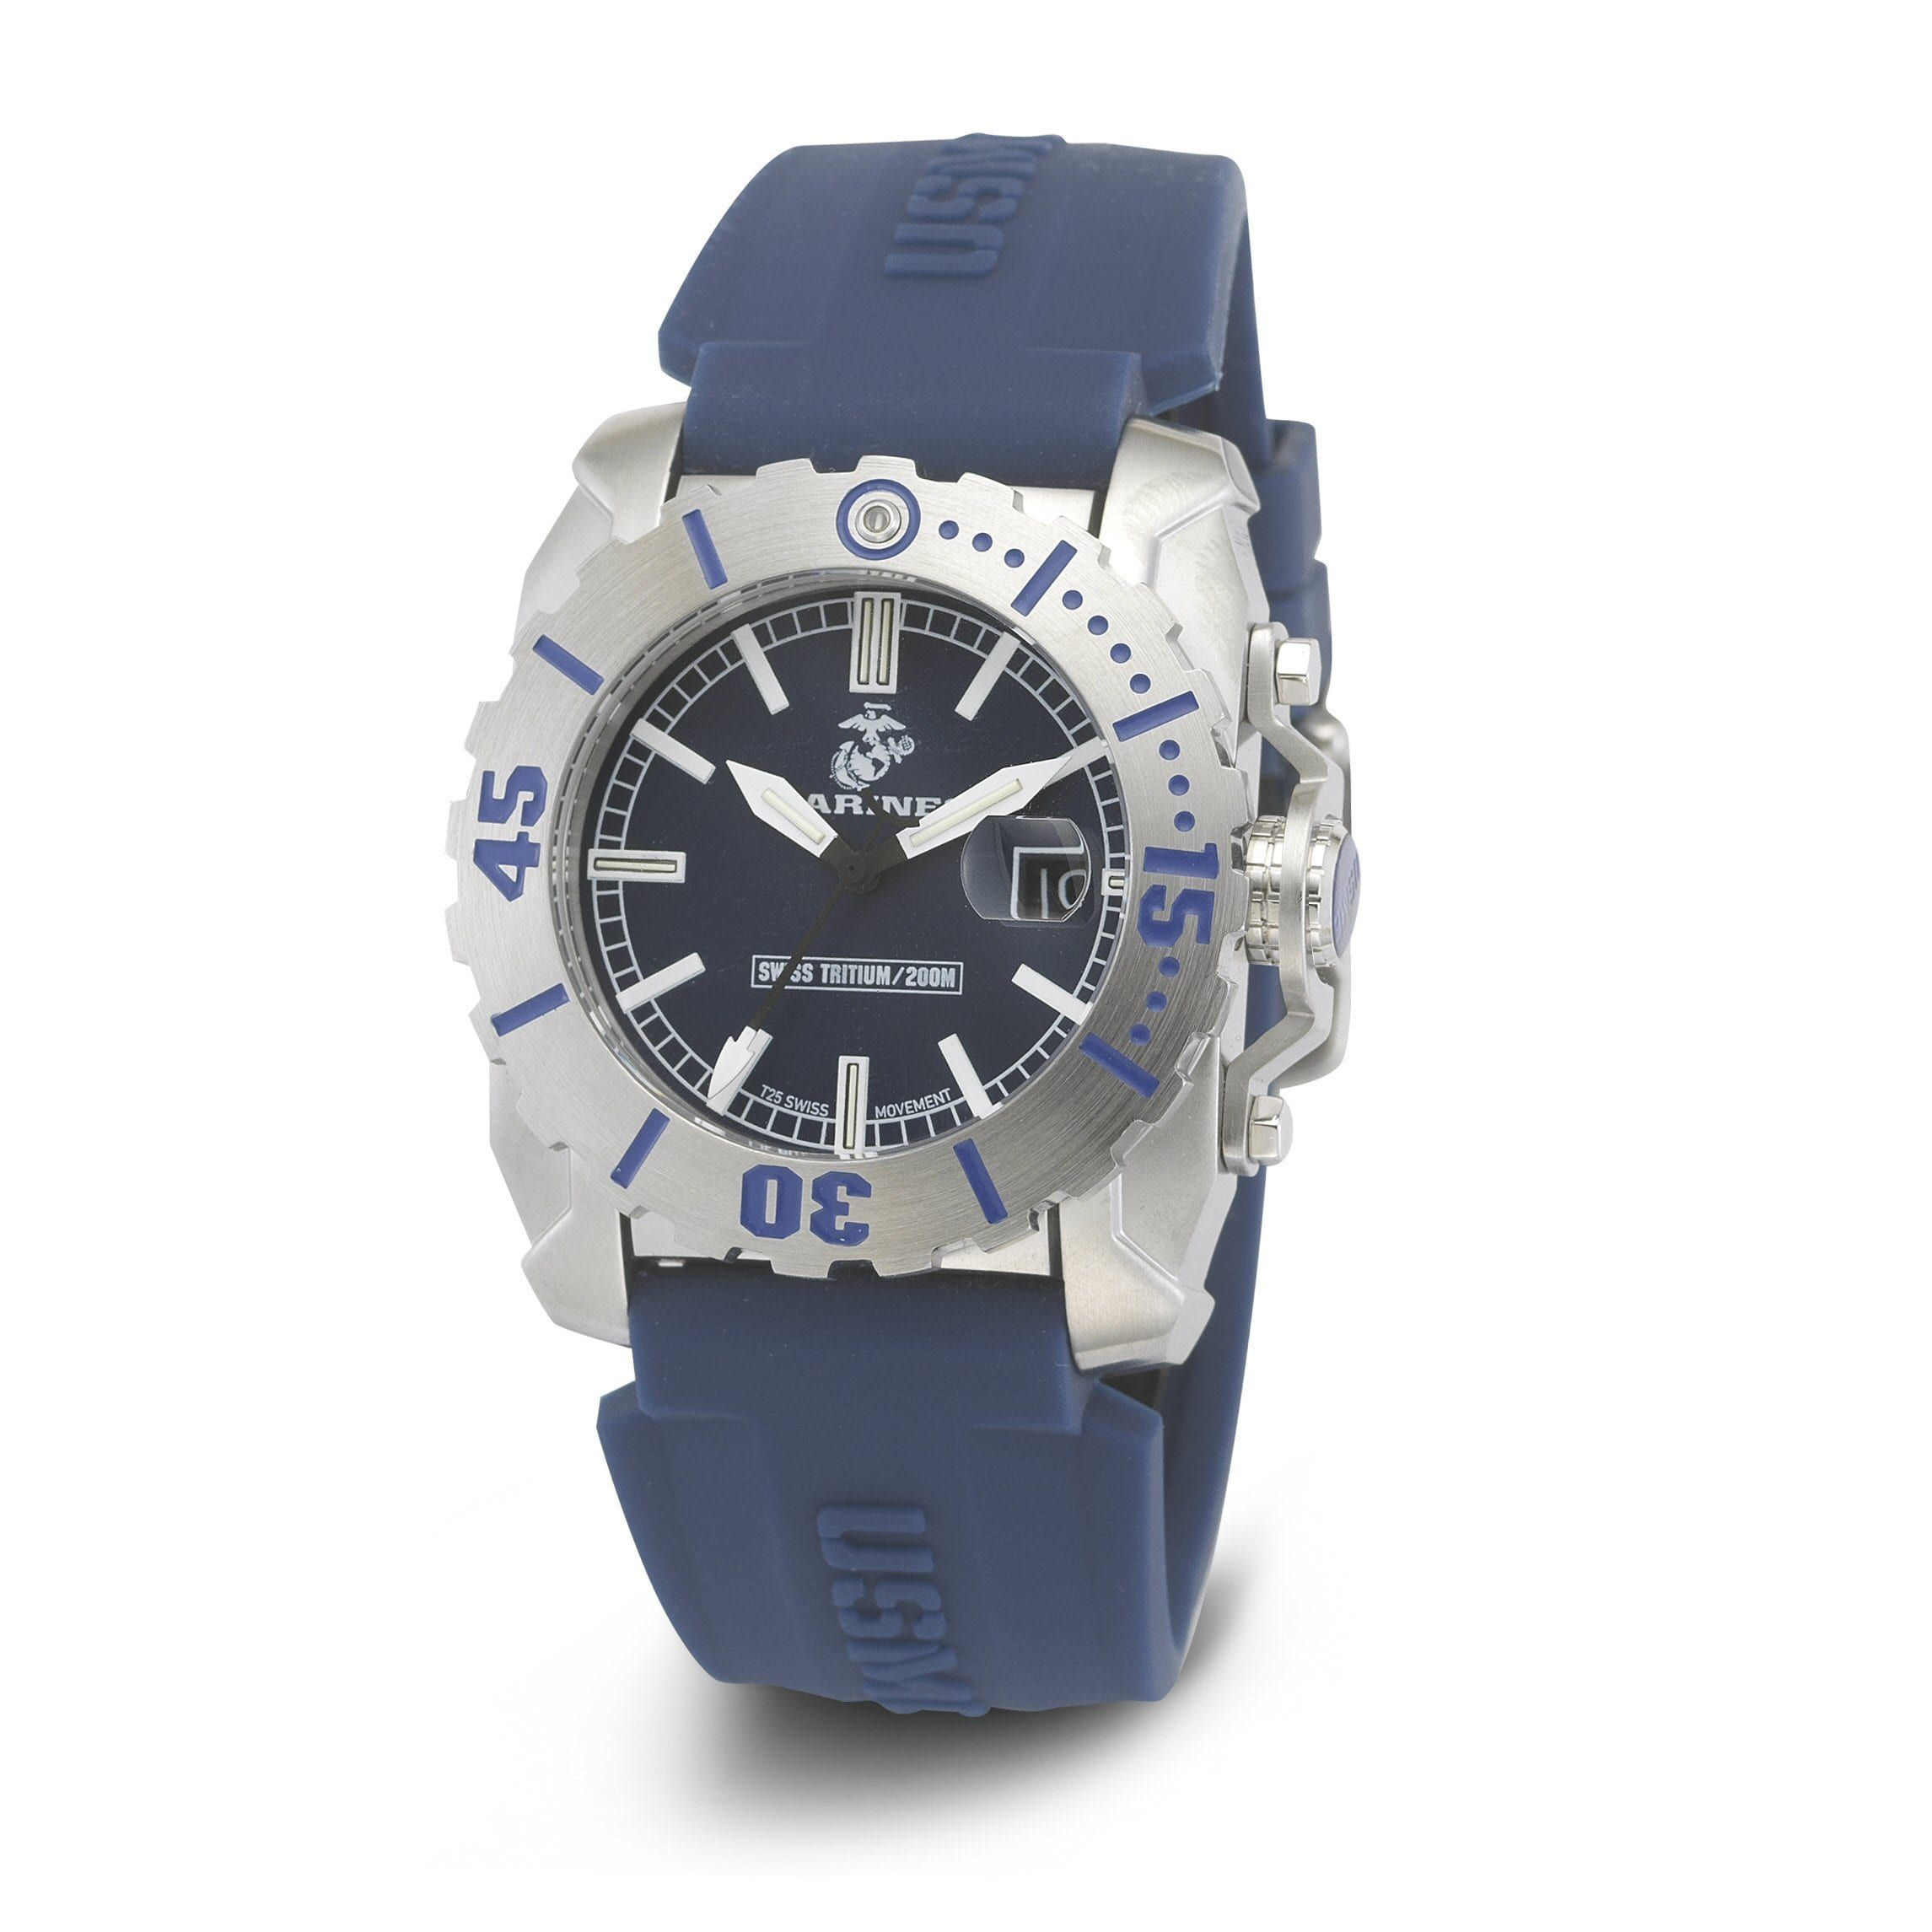 pin p introducing ww watches armor c co the watch wrist from